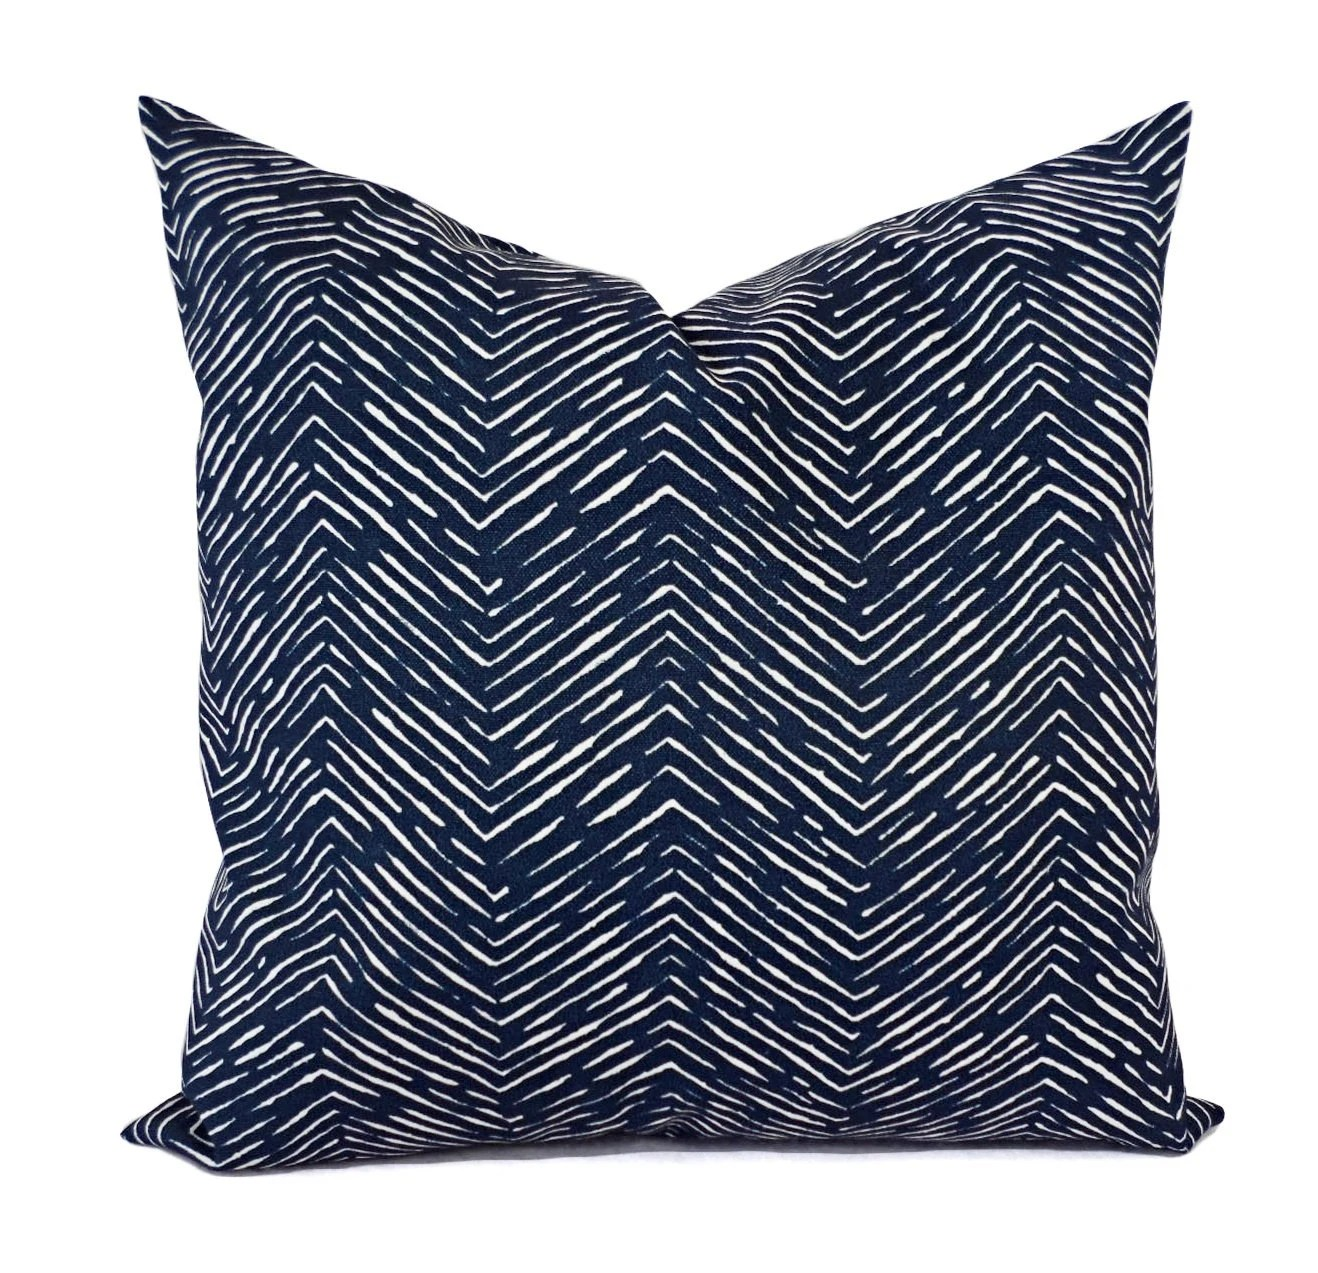 Two OUTDOOR Pillows Navy and White Pillow Cover Navy Blue